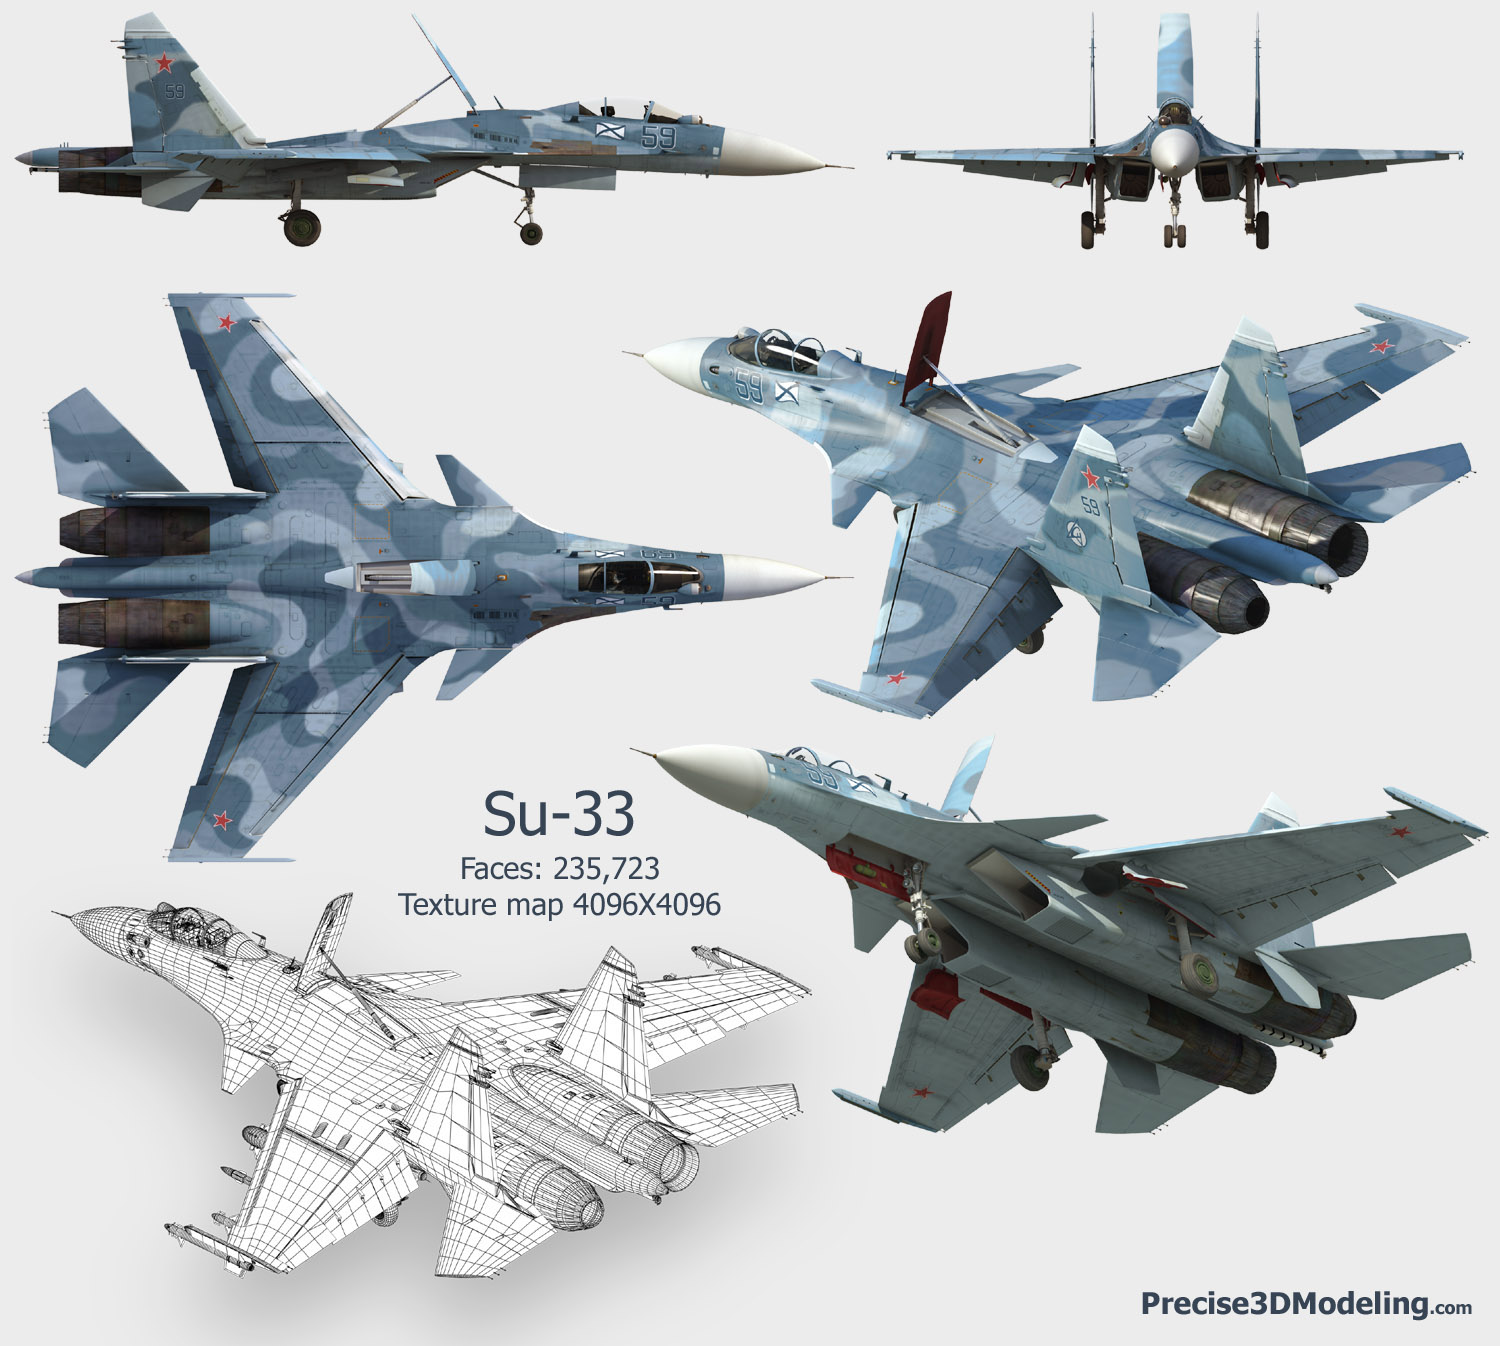 su 34 in syria with Su33 on 50824597 as well 201511251019803901 Syrie Guerre Avion Russe also Mi28 Night Hunter Attack Helicopter Helmet also Russian Su 34  bat Aircraft furthermore Planes2.